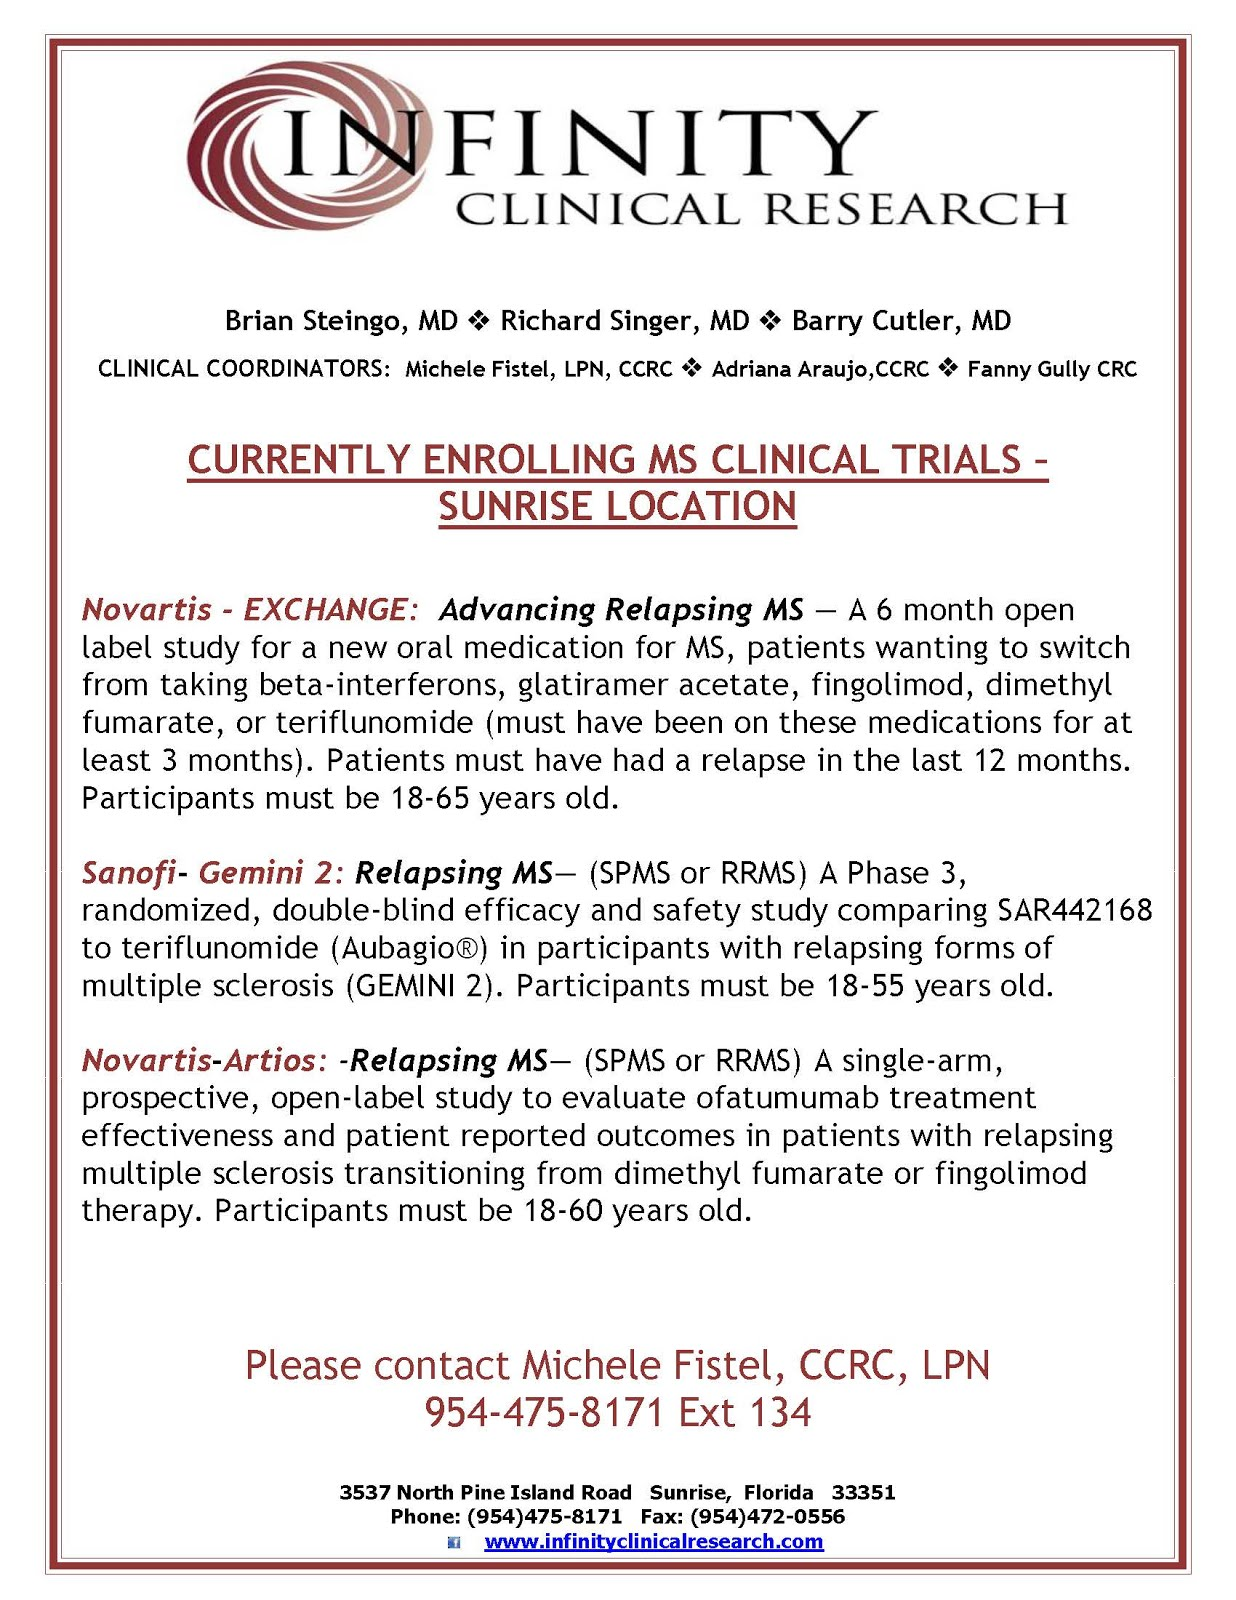 Infinity Clinical Research - Broward County, FL